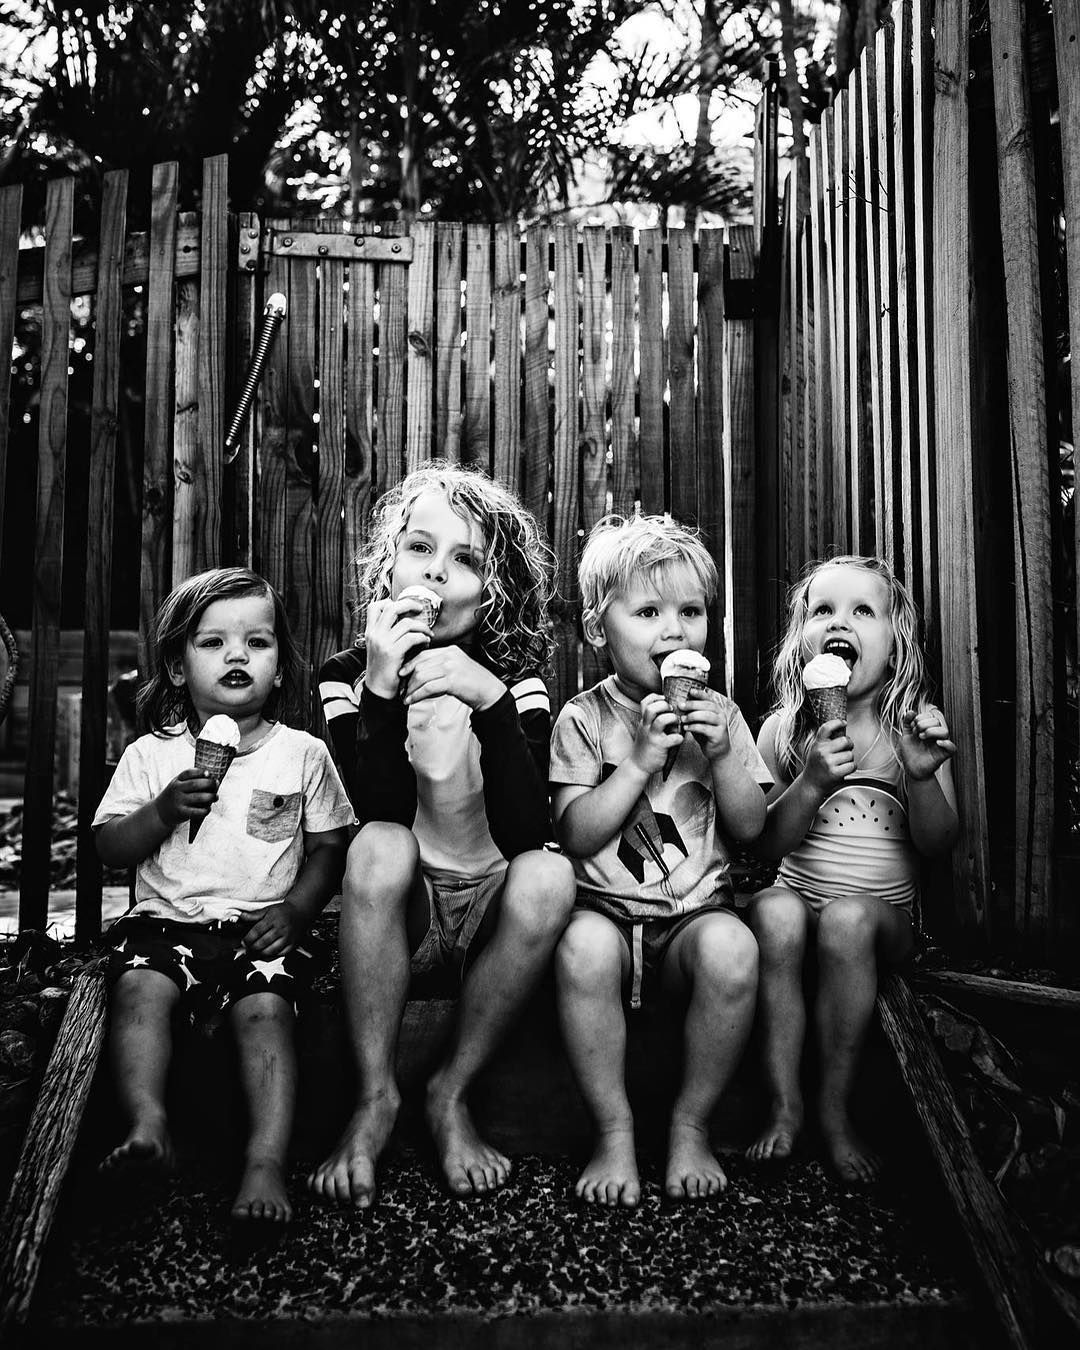 """My Captured Life on Instagram: """"I think around 90% of our extended family photos are of the kids eating ice cream because that's literally the only time they will stay…"""" #extendedfamilyphotography My Captured Life on Instagram: """"I think around 90% of our extended family photos are of the kids eating ice cream because that's literally the only time they will stay…"""" #extendedfamilyphotography My Captured Life on Instagram: """"I think around 90% of our extended family photos are of the #extendedfamilyphotography"""